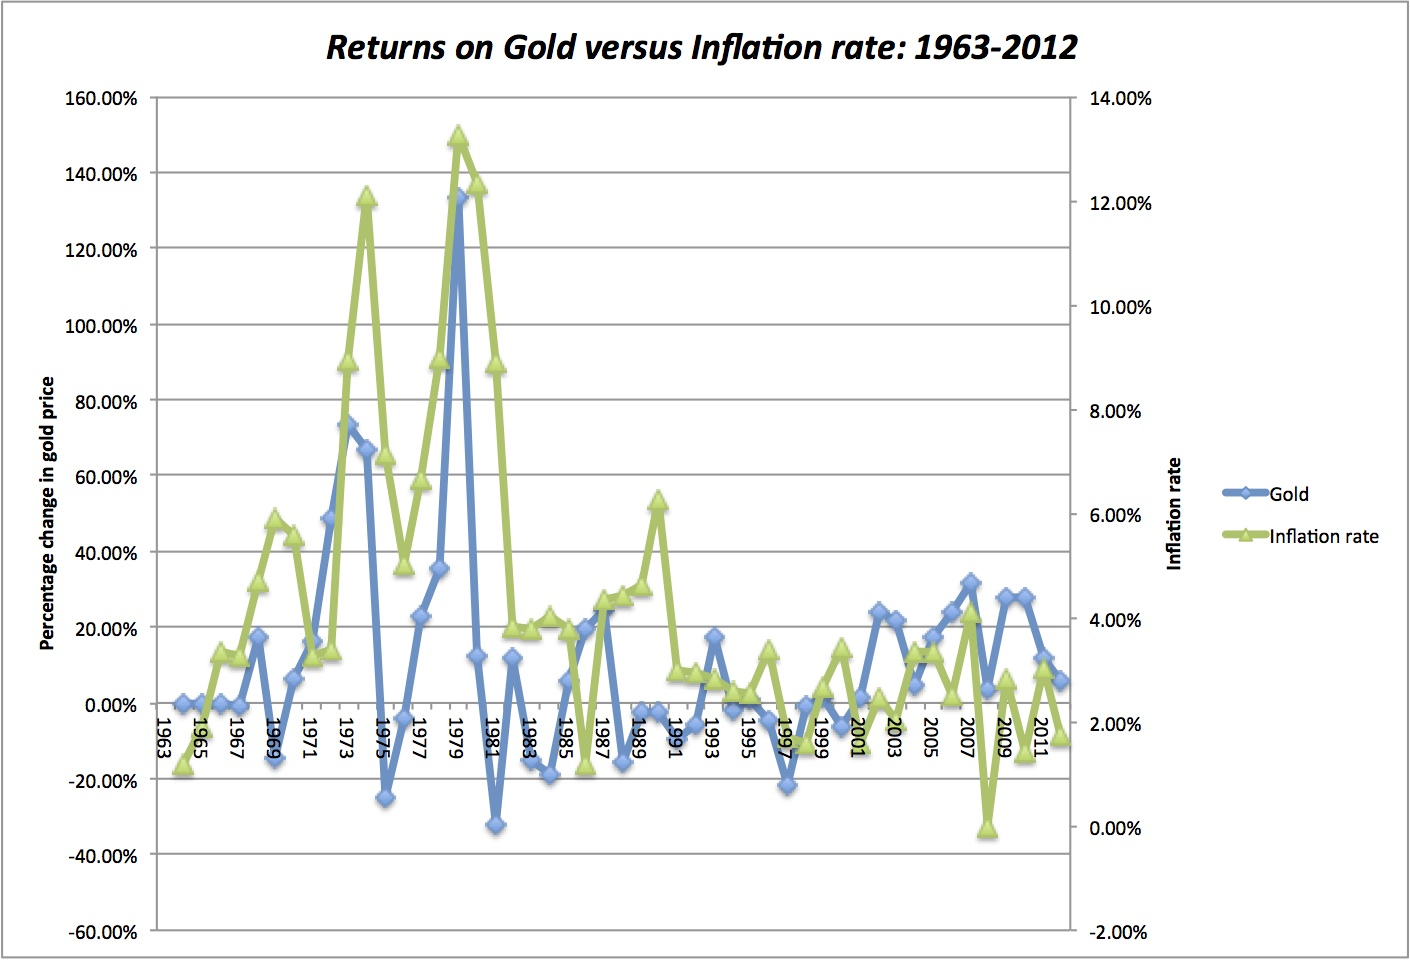 Musings on Markets: The Golden Rule? Thoughts on gold as an